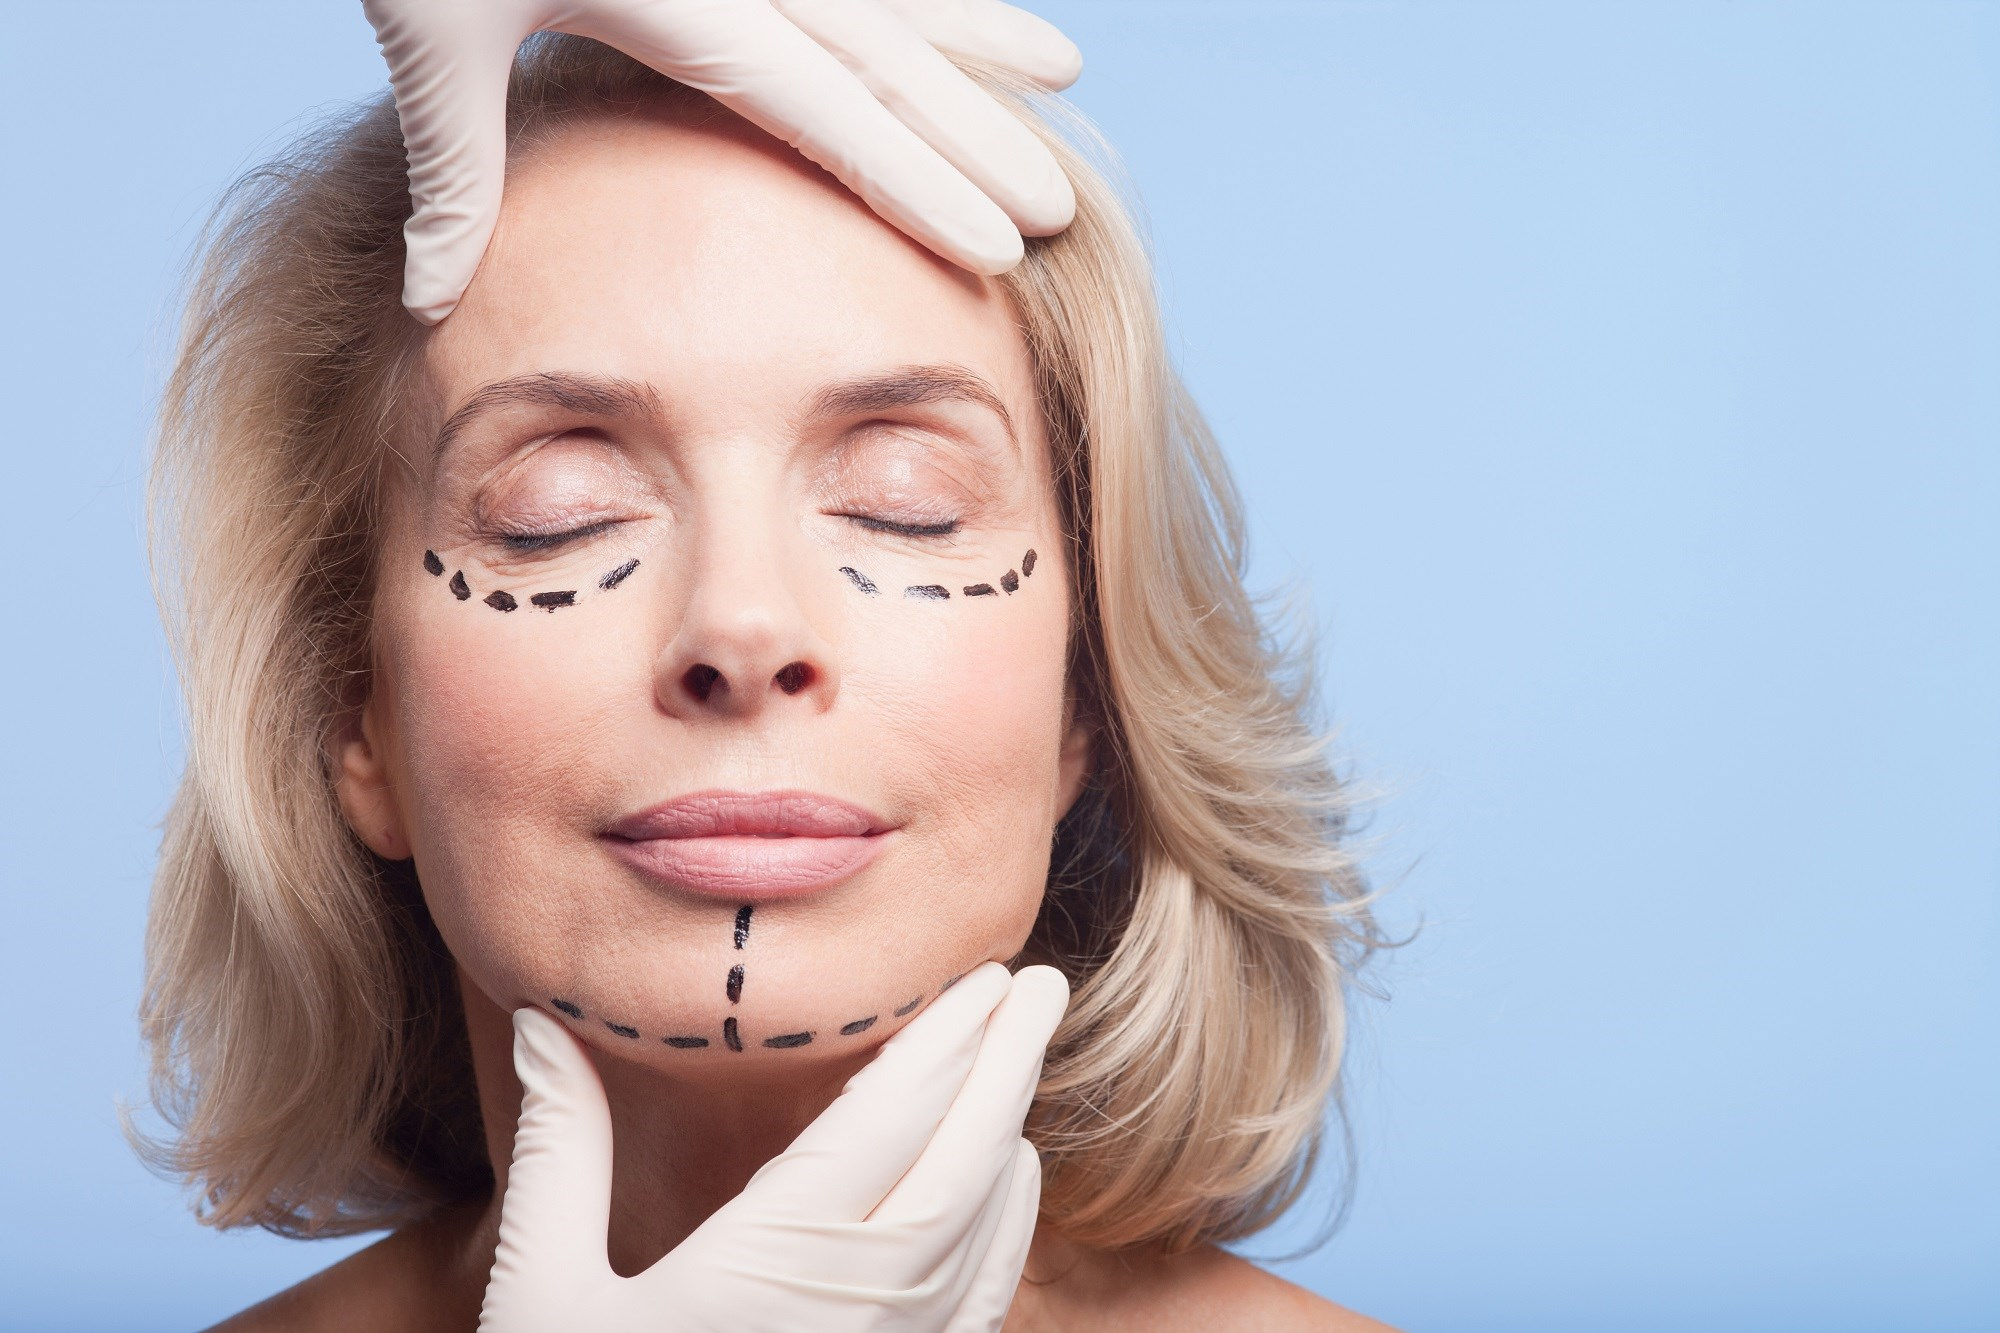 YouTube Videos May Provide Biased Info on Facial Plastic Sx